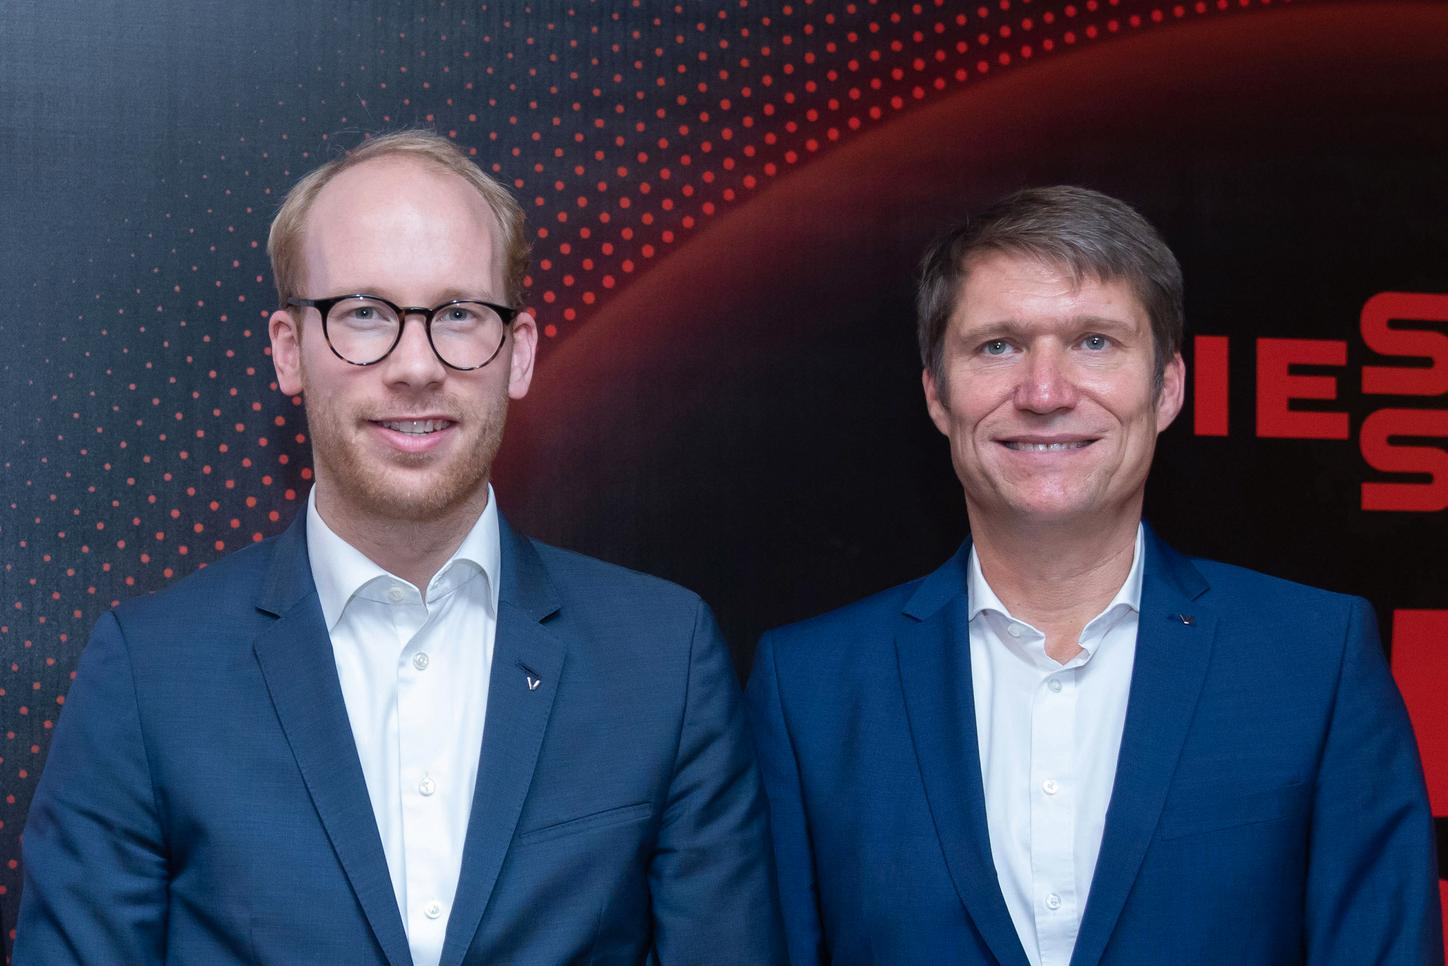 The picture shows Co-CEO Max Viessmann and Chief Sales Officer Thomas Heim.